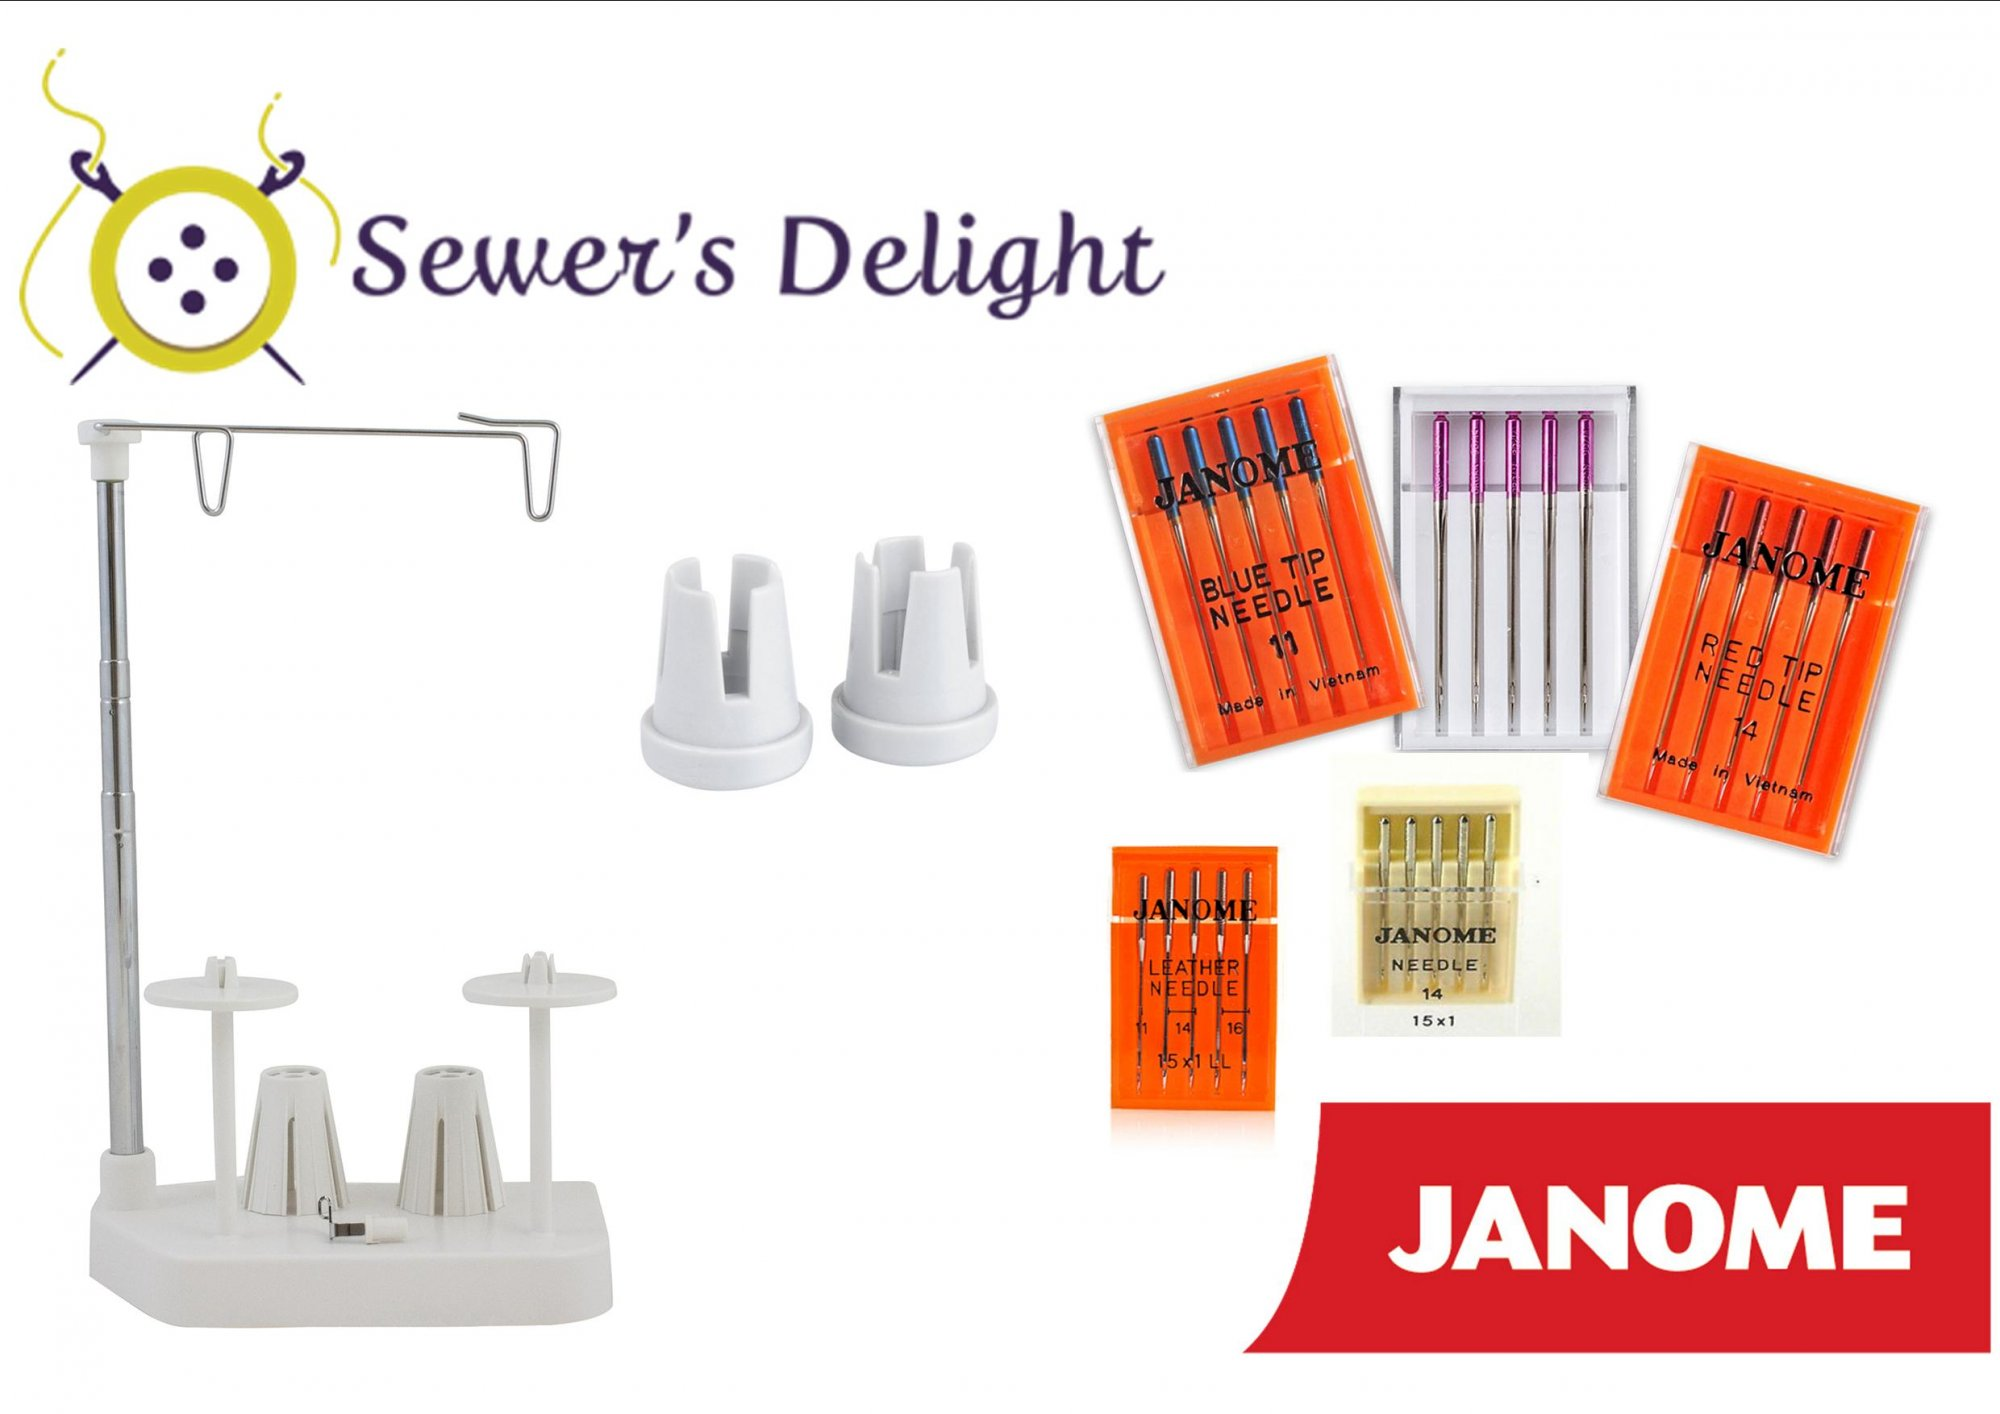 janome embroidery machine accessories